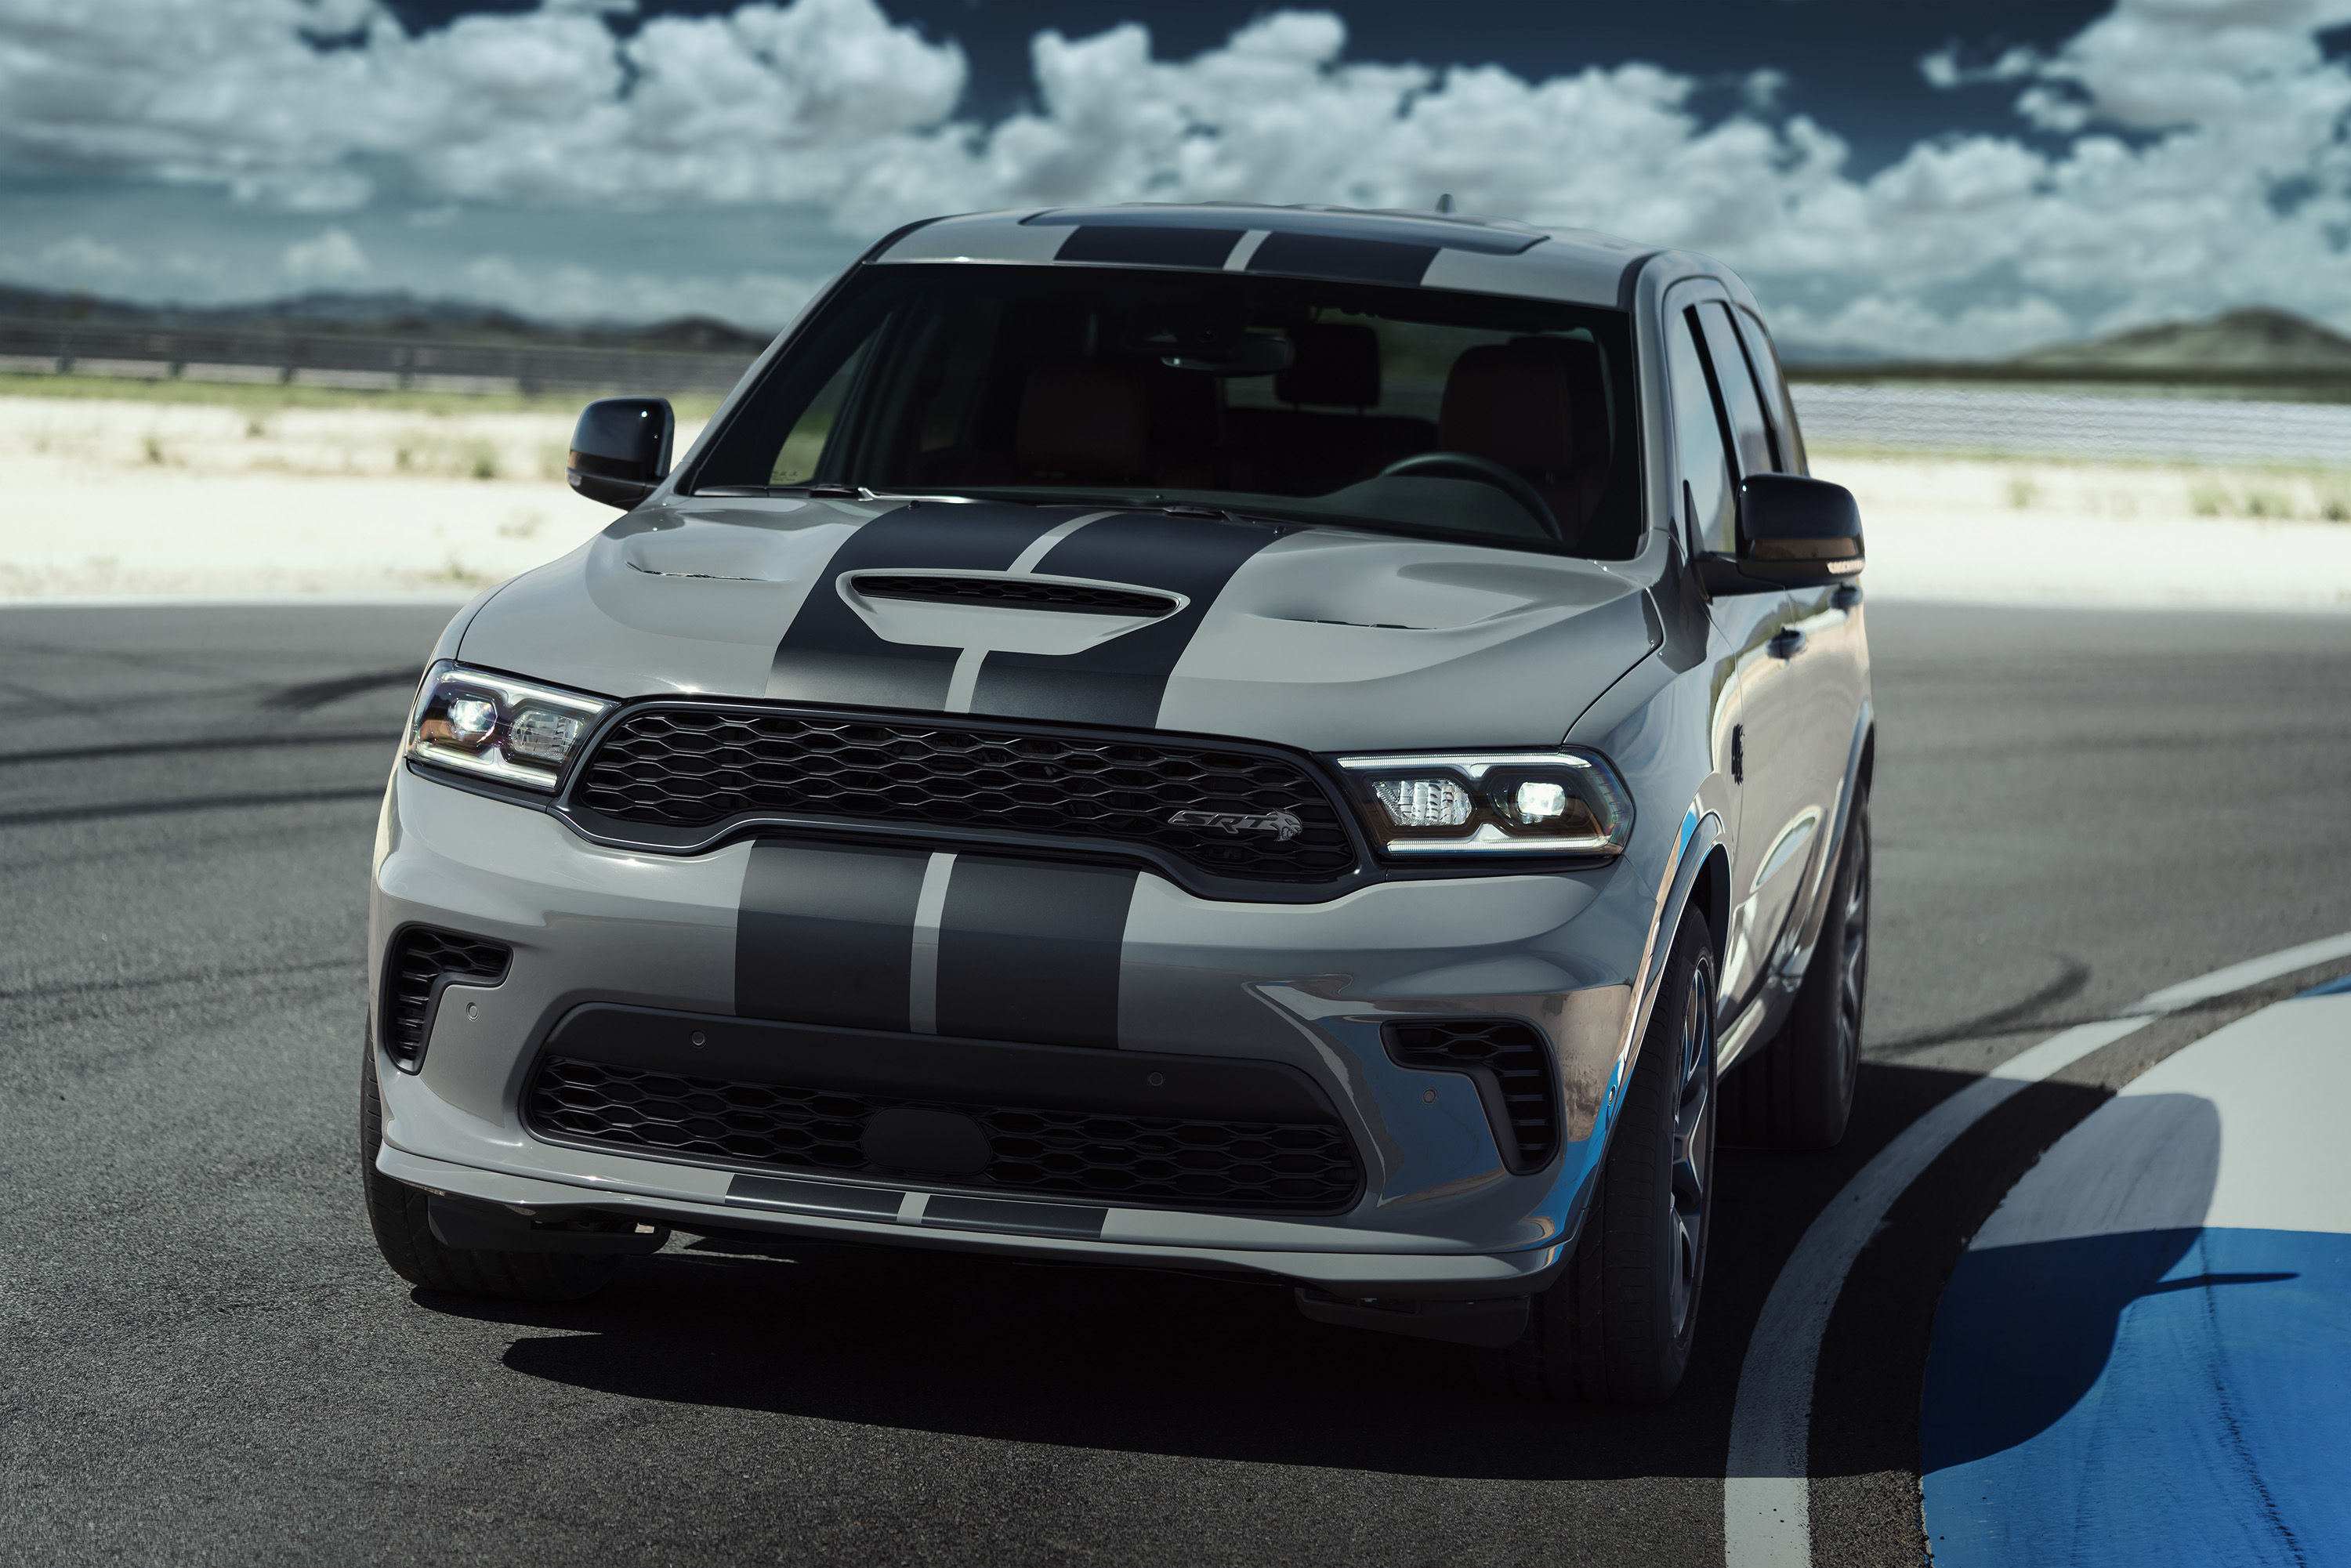 The Dodge Durango Srt Hellcat Is A Family Suv That Can Go 180 Mph Cnn